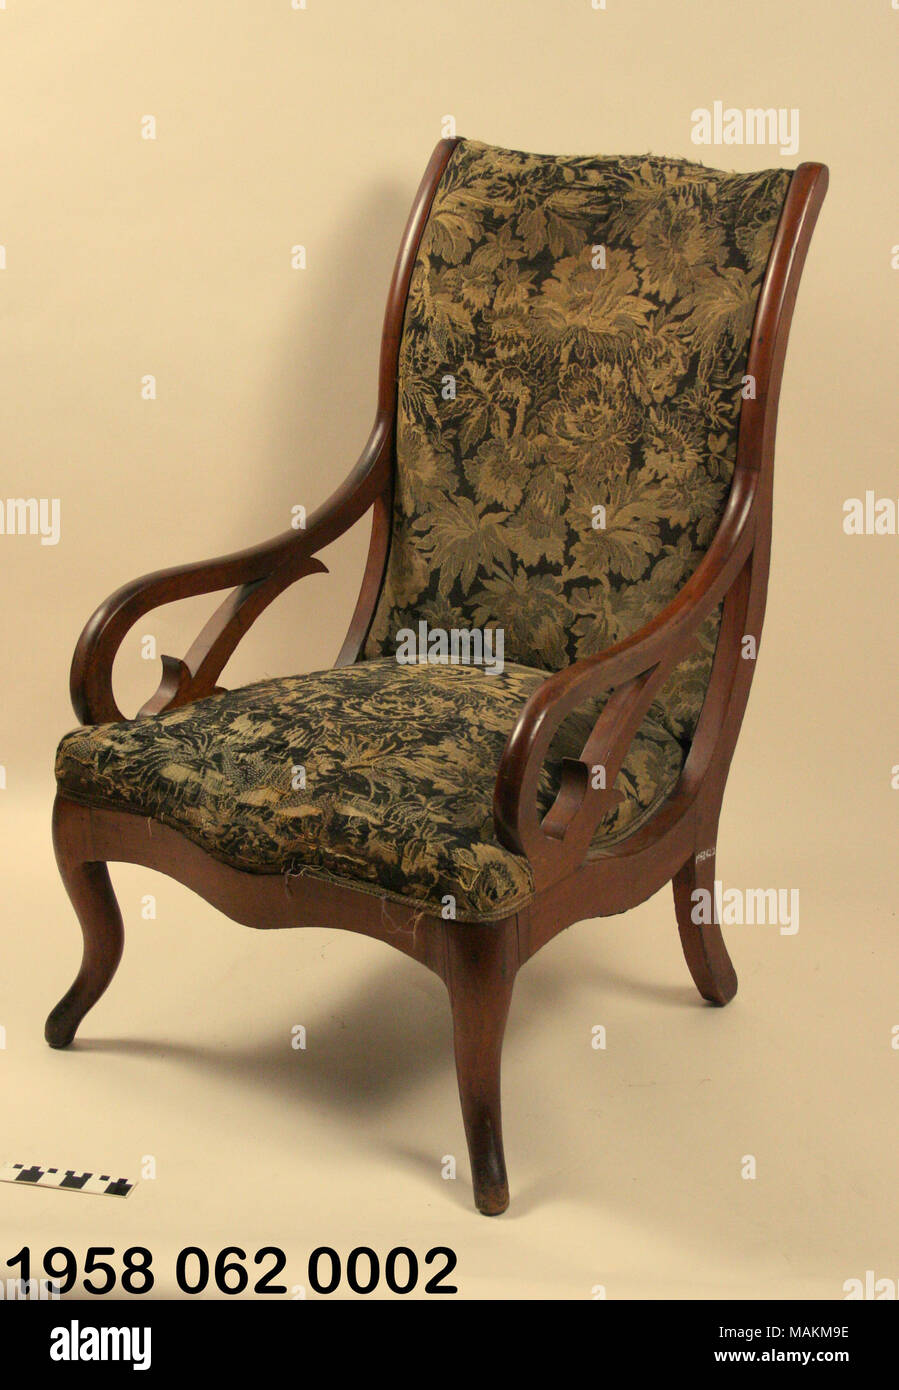 Body Built Chairs This Chair Along With A Matching Set Of Arm Chairs And Sofa Were